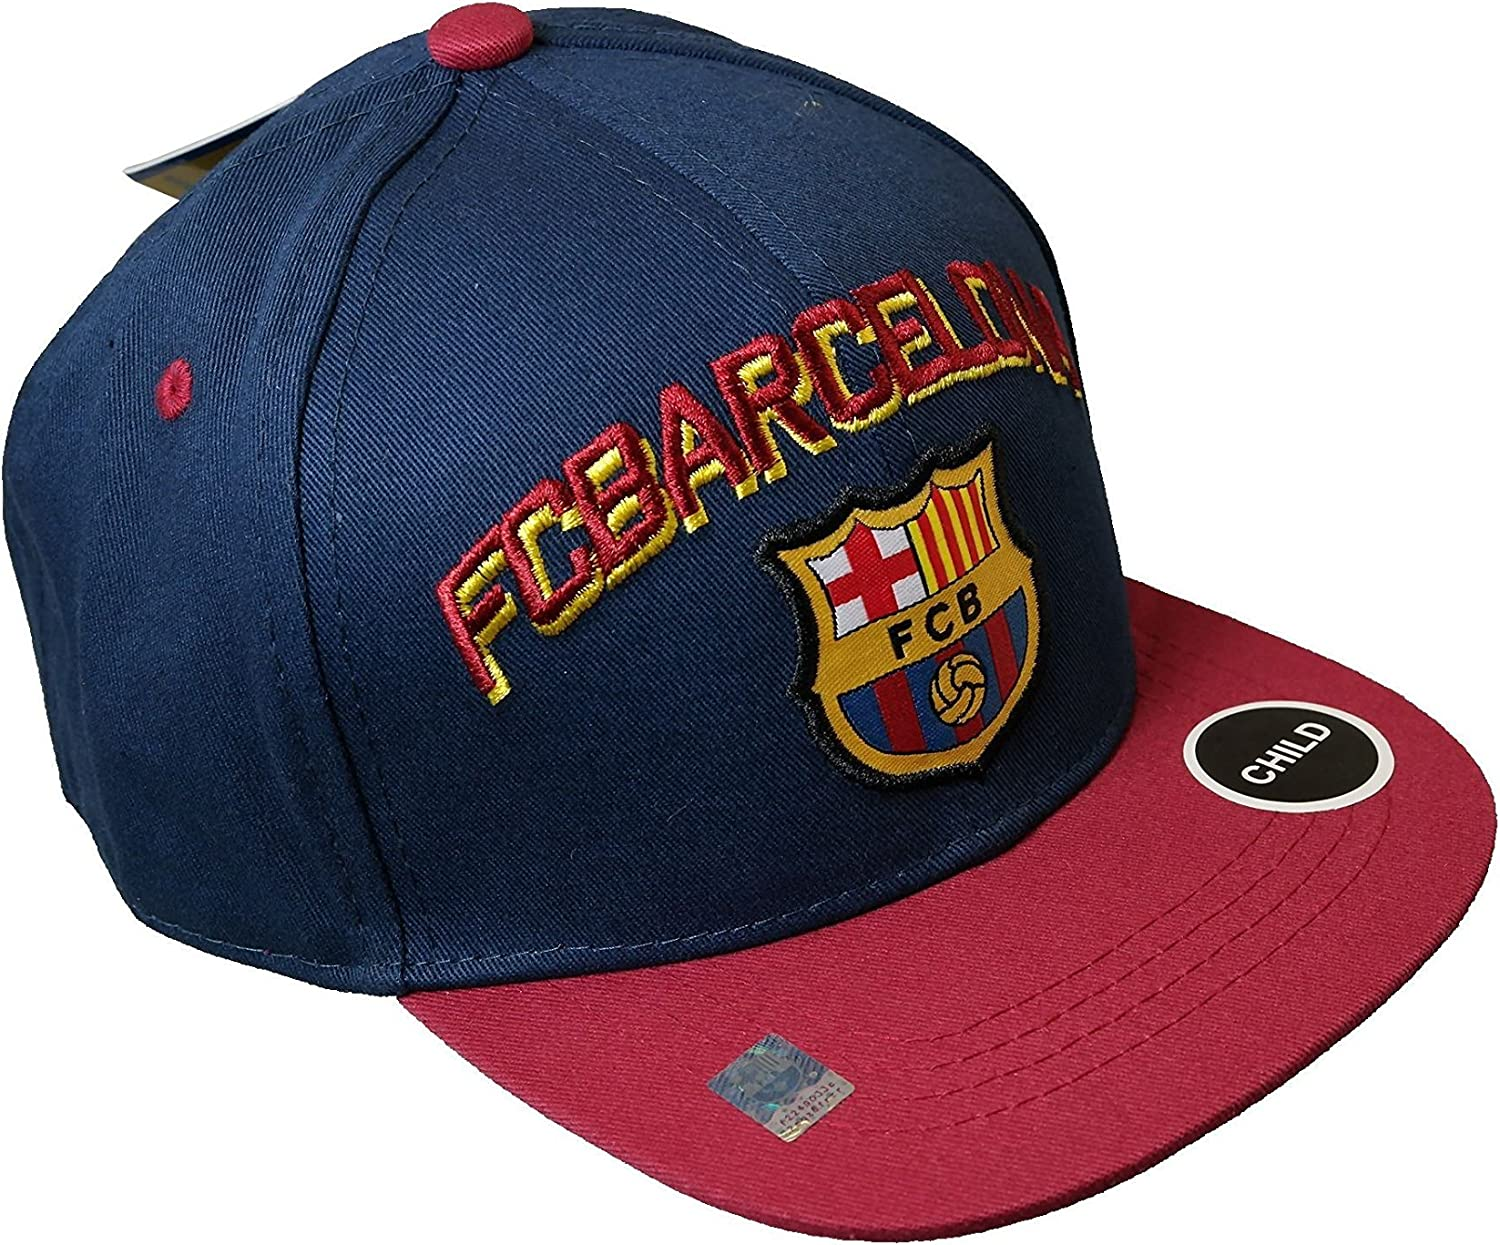 024 FCB One Size RHINOXGROUP Child FC Barcelona Authentic Official Licensed Soccer Cap